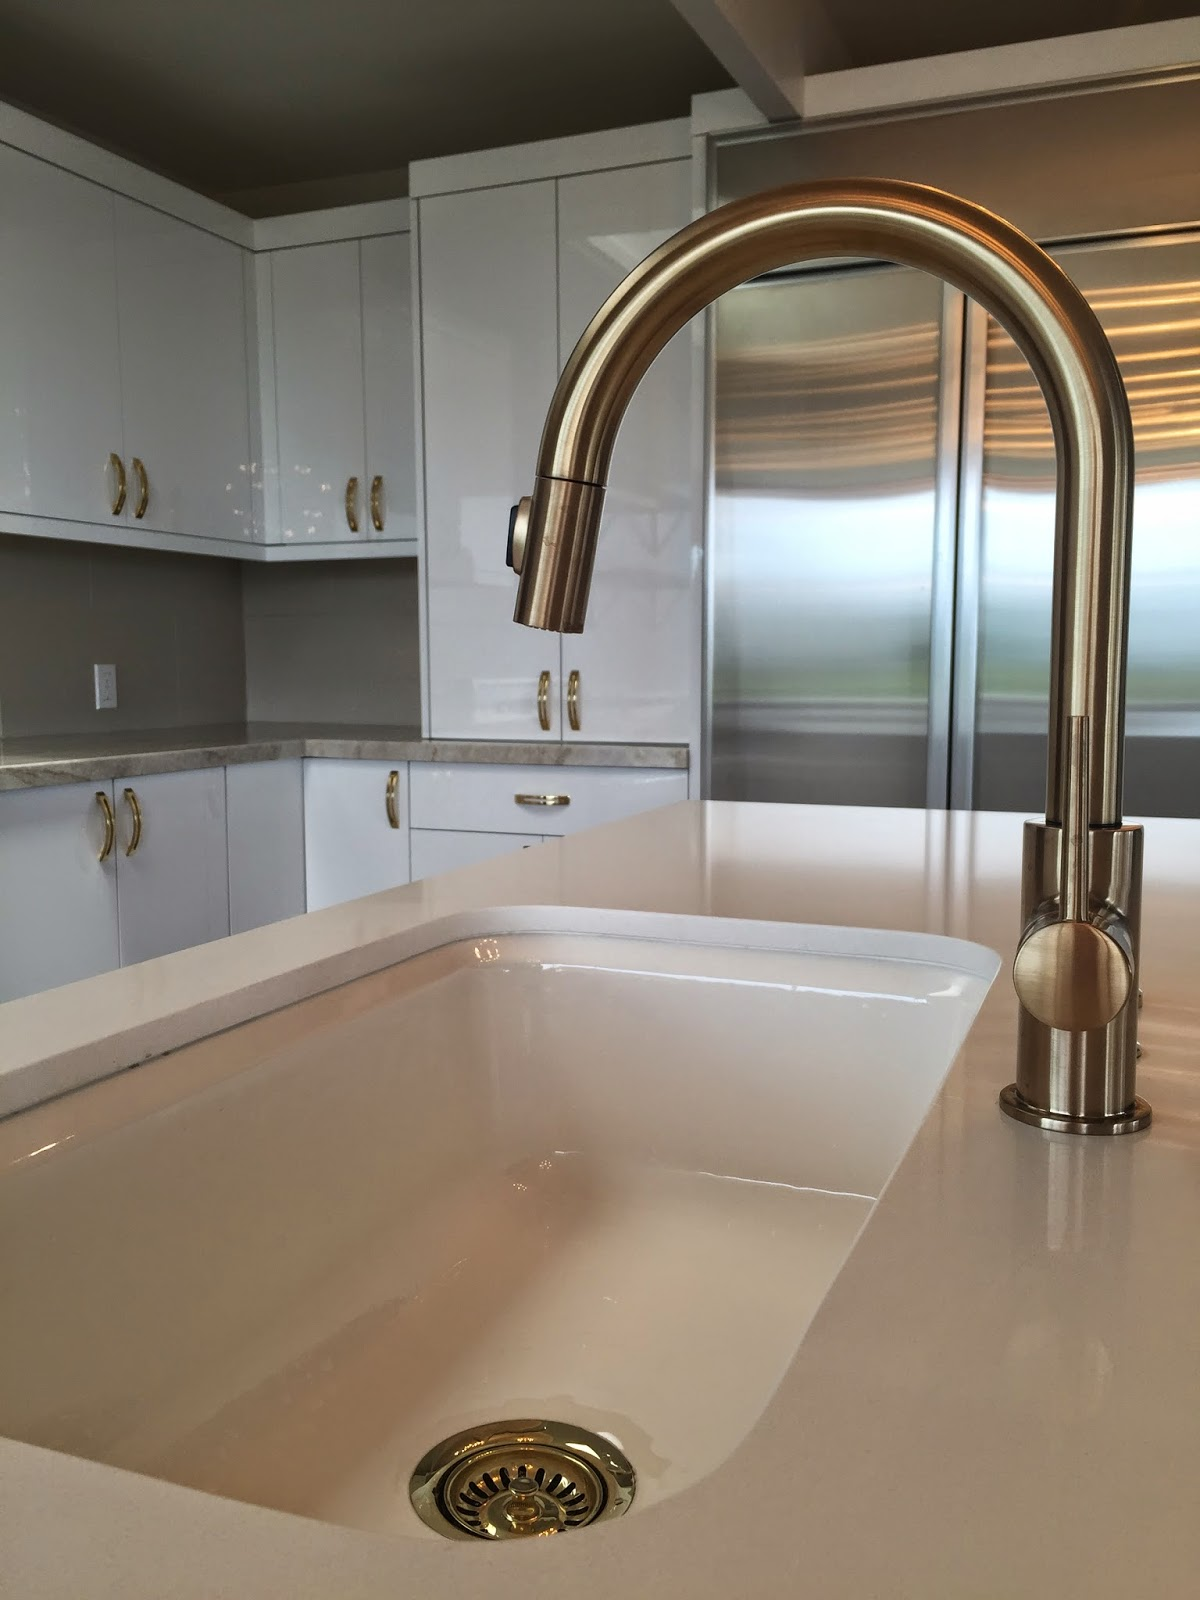 bright styled to but white faucets delta bronze champagne for it relatively s decided from am kitchen since with faucet and this i beverage kim the lace change was ro glad matching new remodel kims so